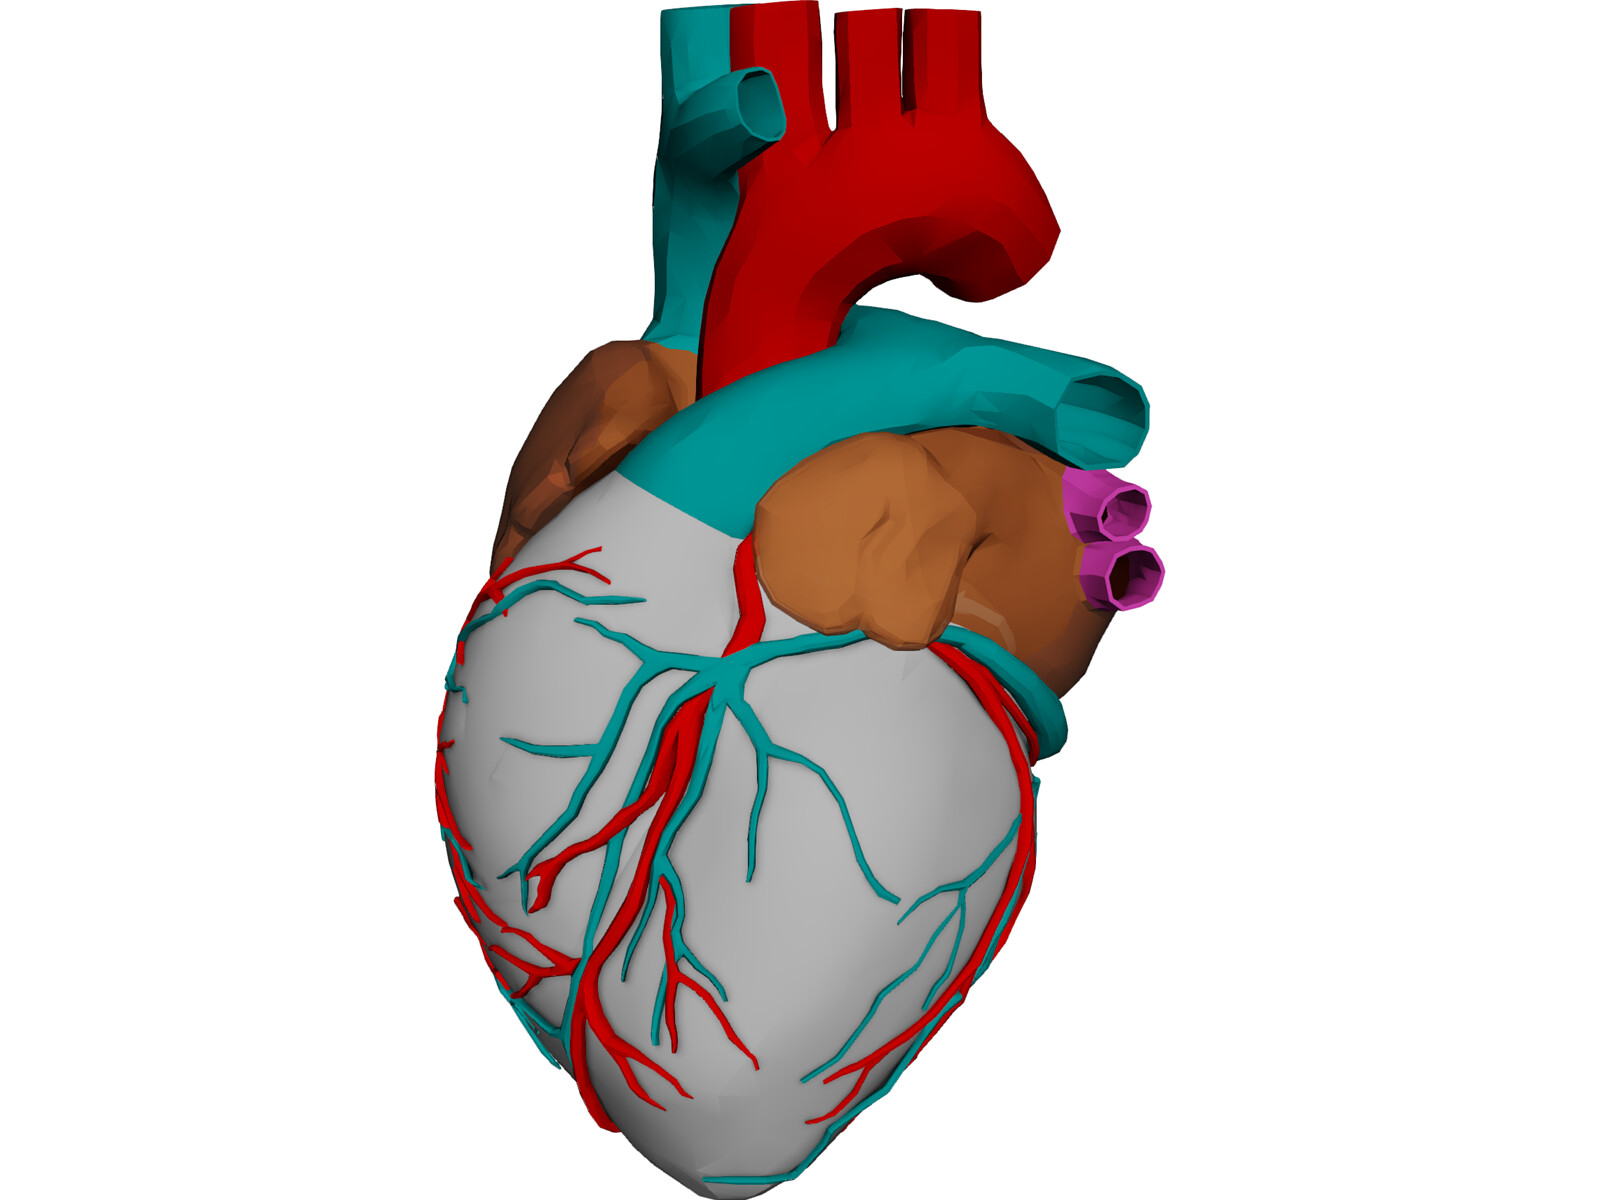 Heart with Internal Parts 3D Model - 3D CAD Browser